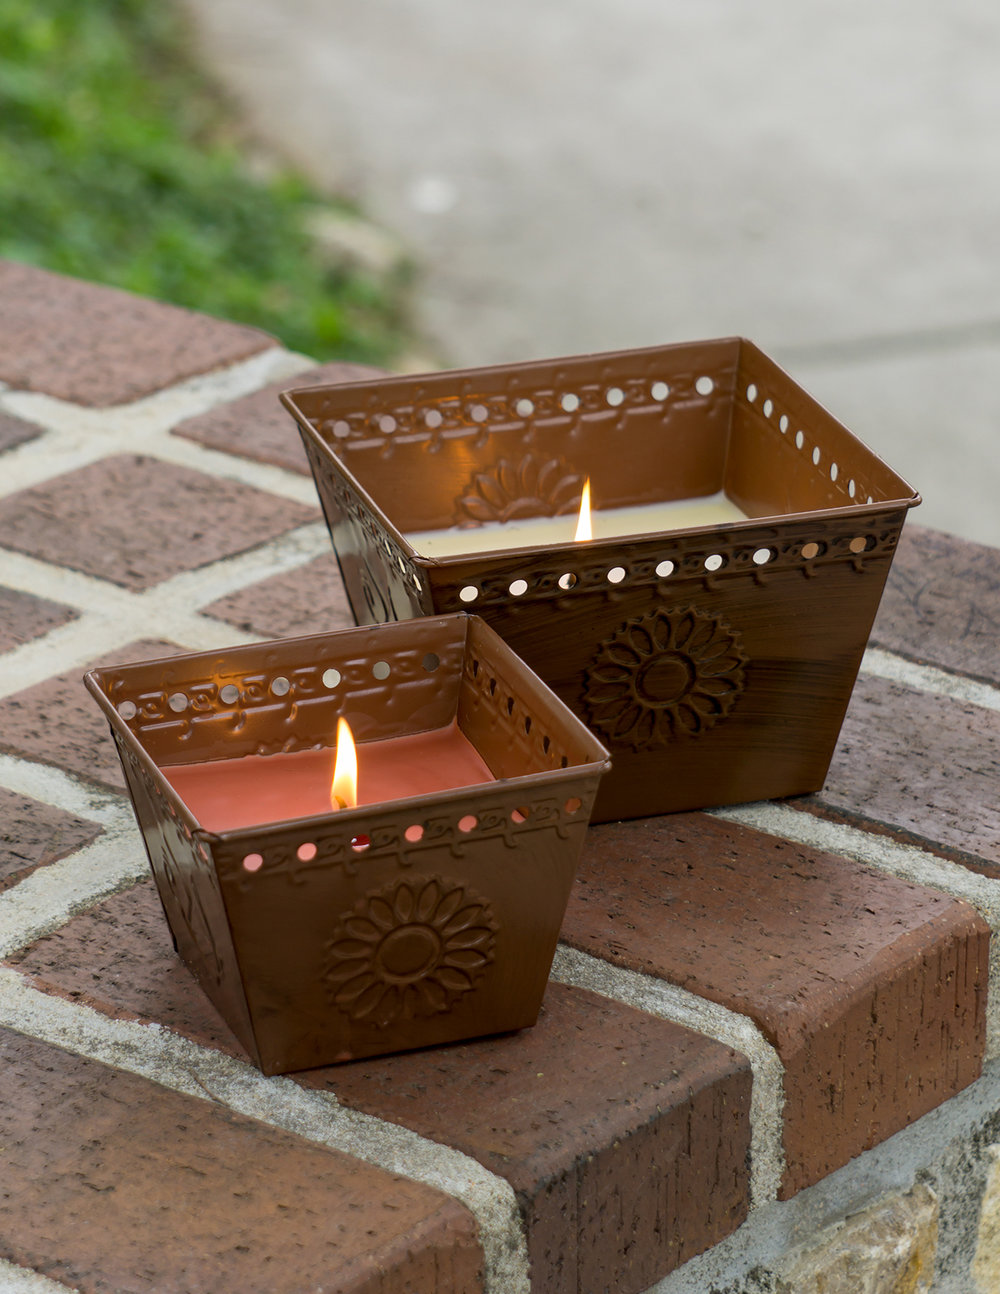 Outdoor & Citronella - Deadline for orders/commitments is Sept. 26, 2017First available ship date is Feb. 10, 2018.